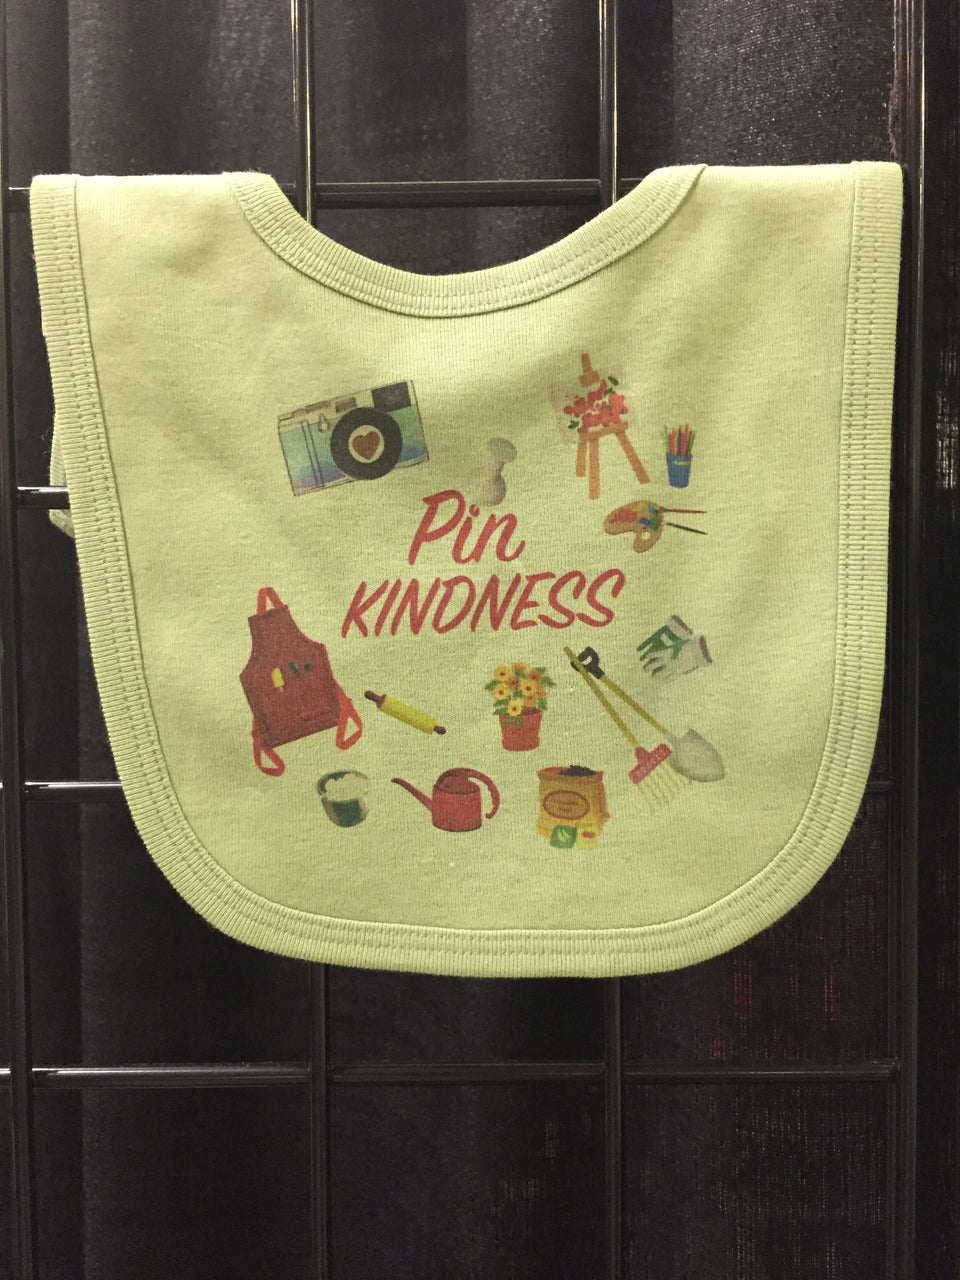 Pin Kindness Bib